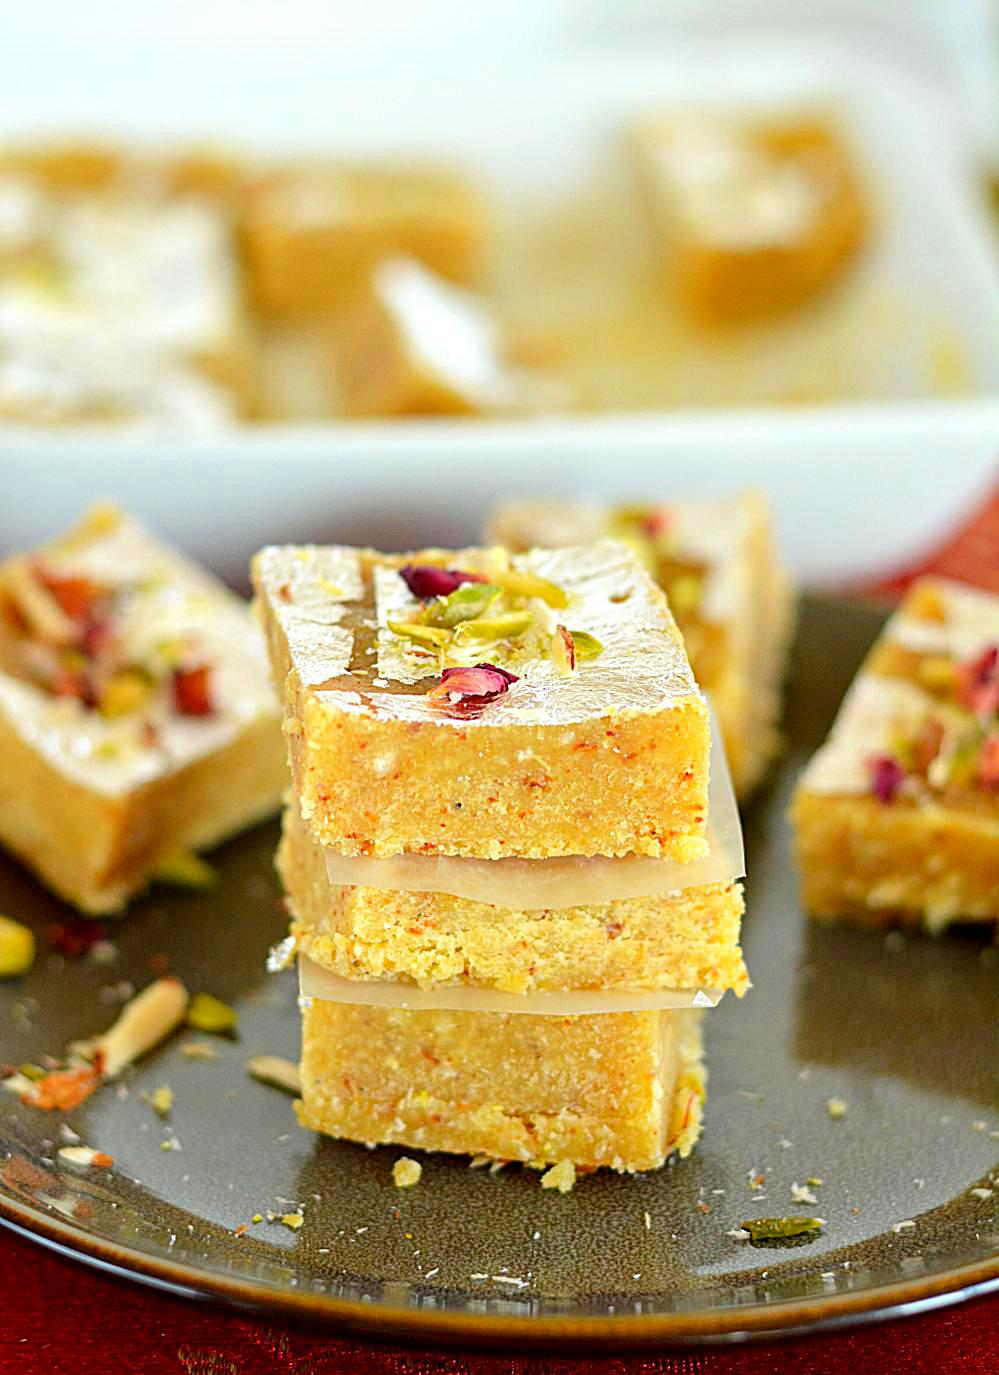 Moong Dal Burfi Made With Yellow Lentils Is A Soft Delicious And Creamy Fudge Gluten Free Delicacy That Easy To Make Very Addictive